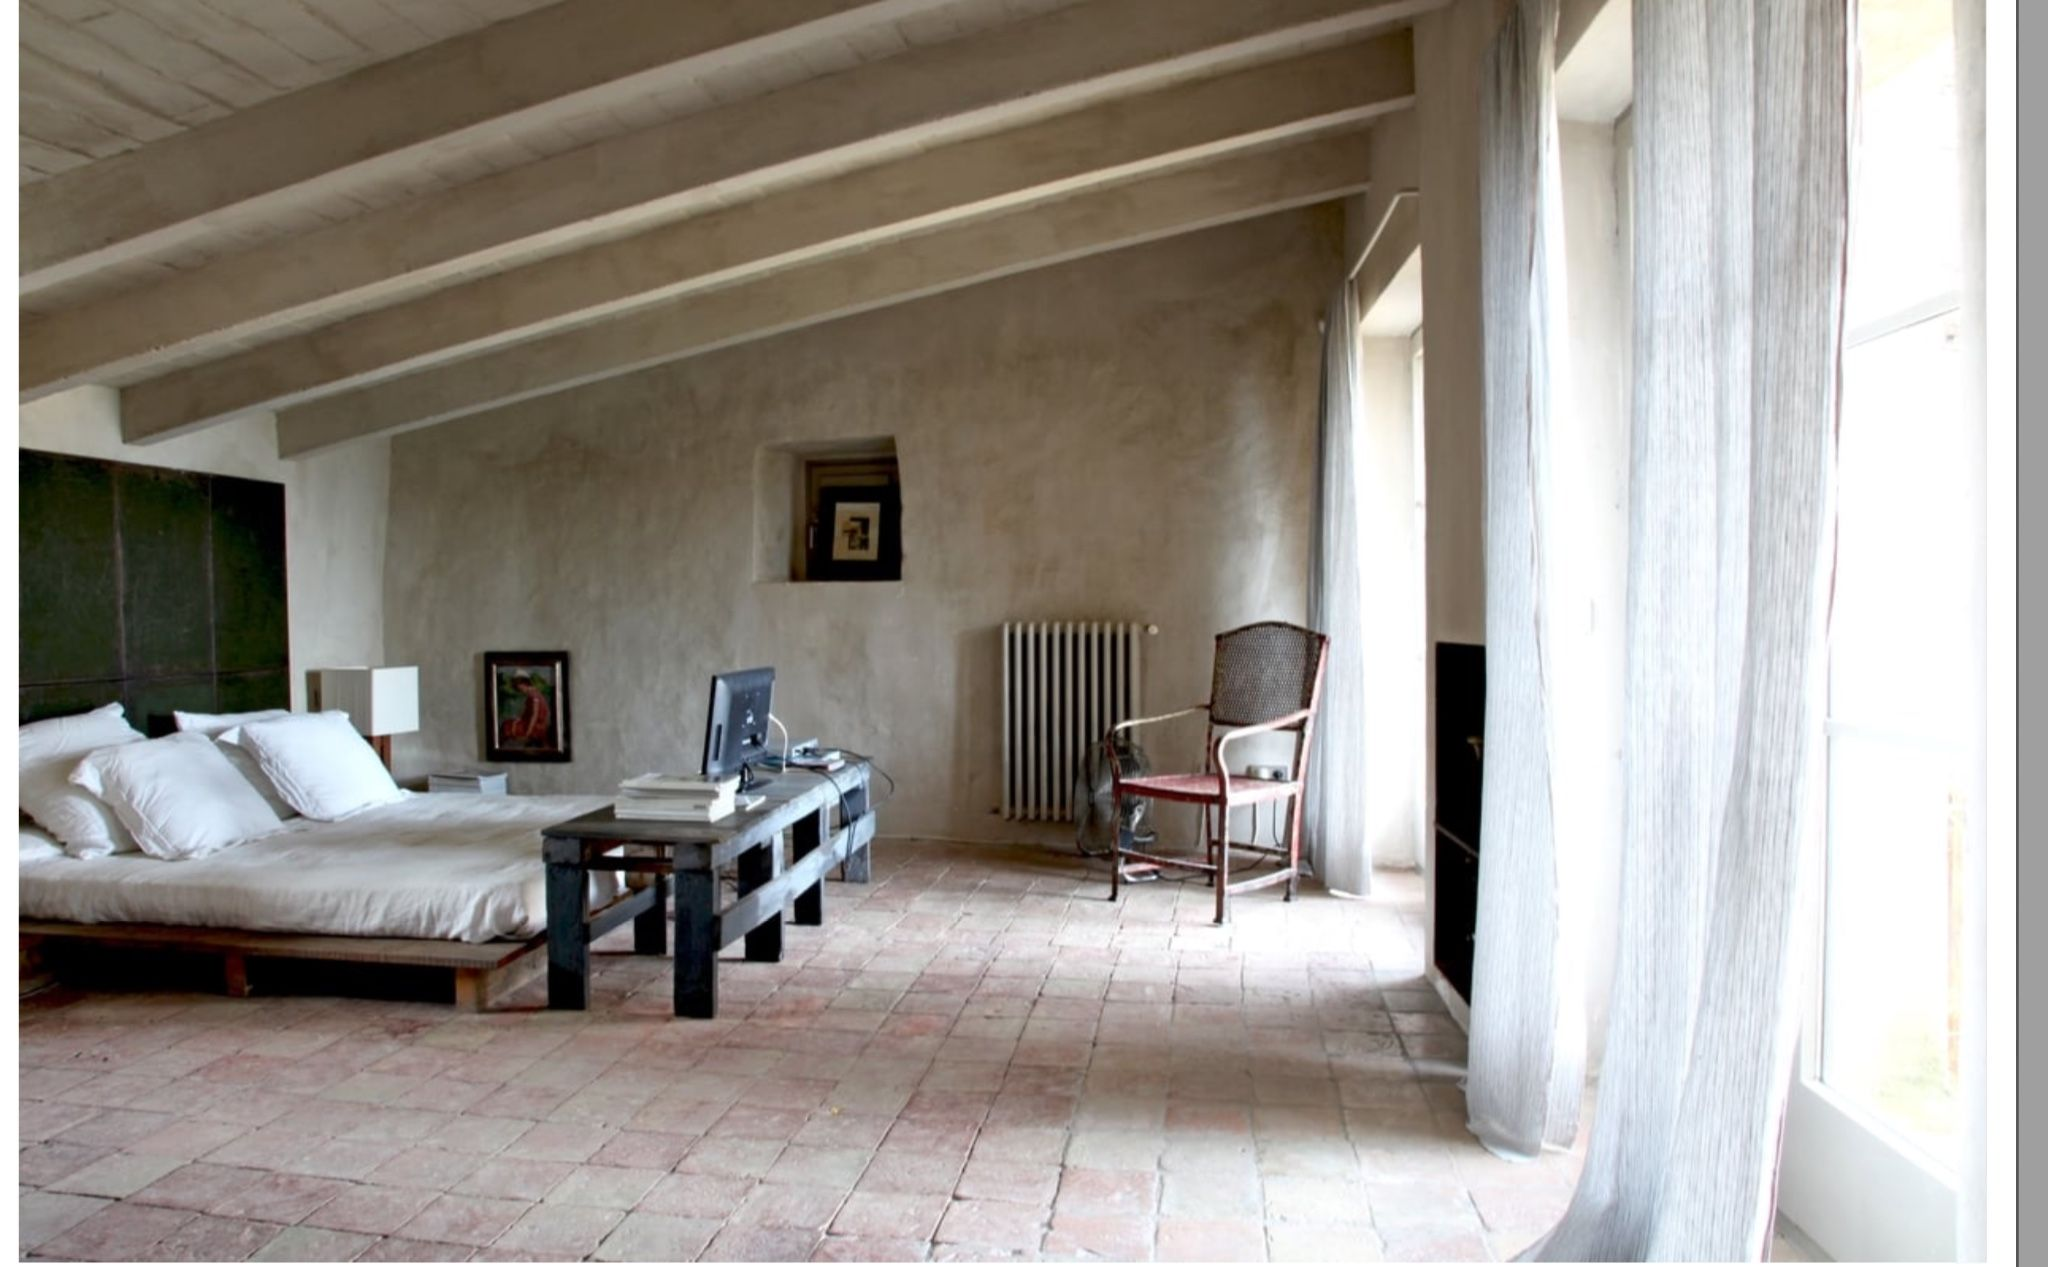 Bedroom interior roof pin by cathie herrmann on sous les toits  pinterest